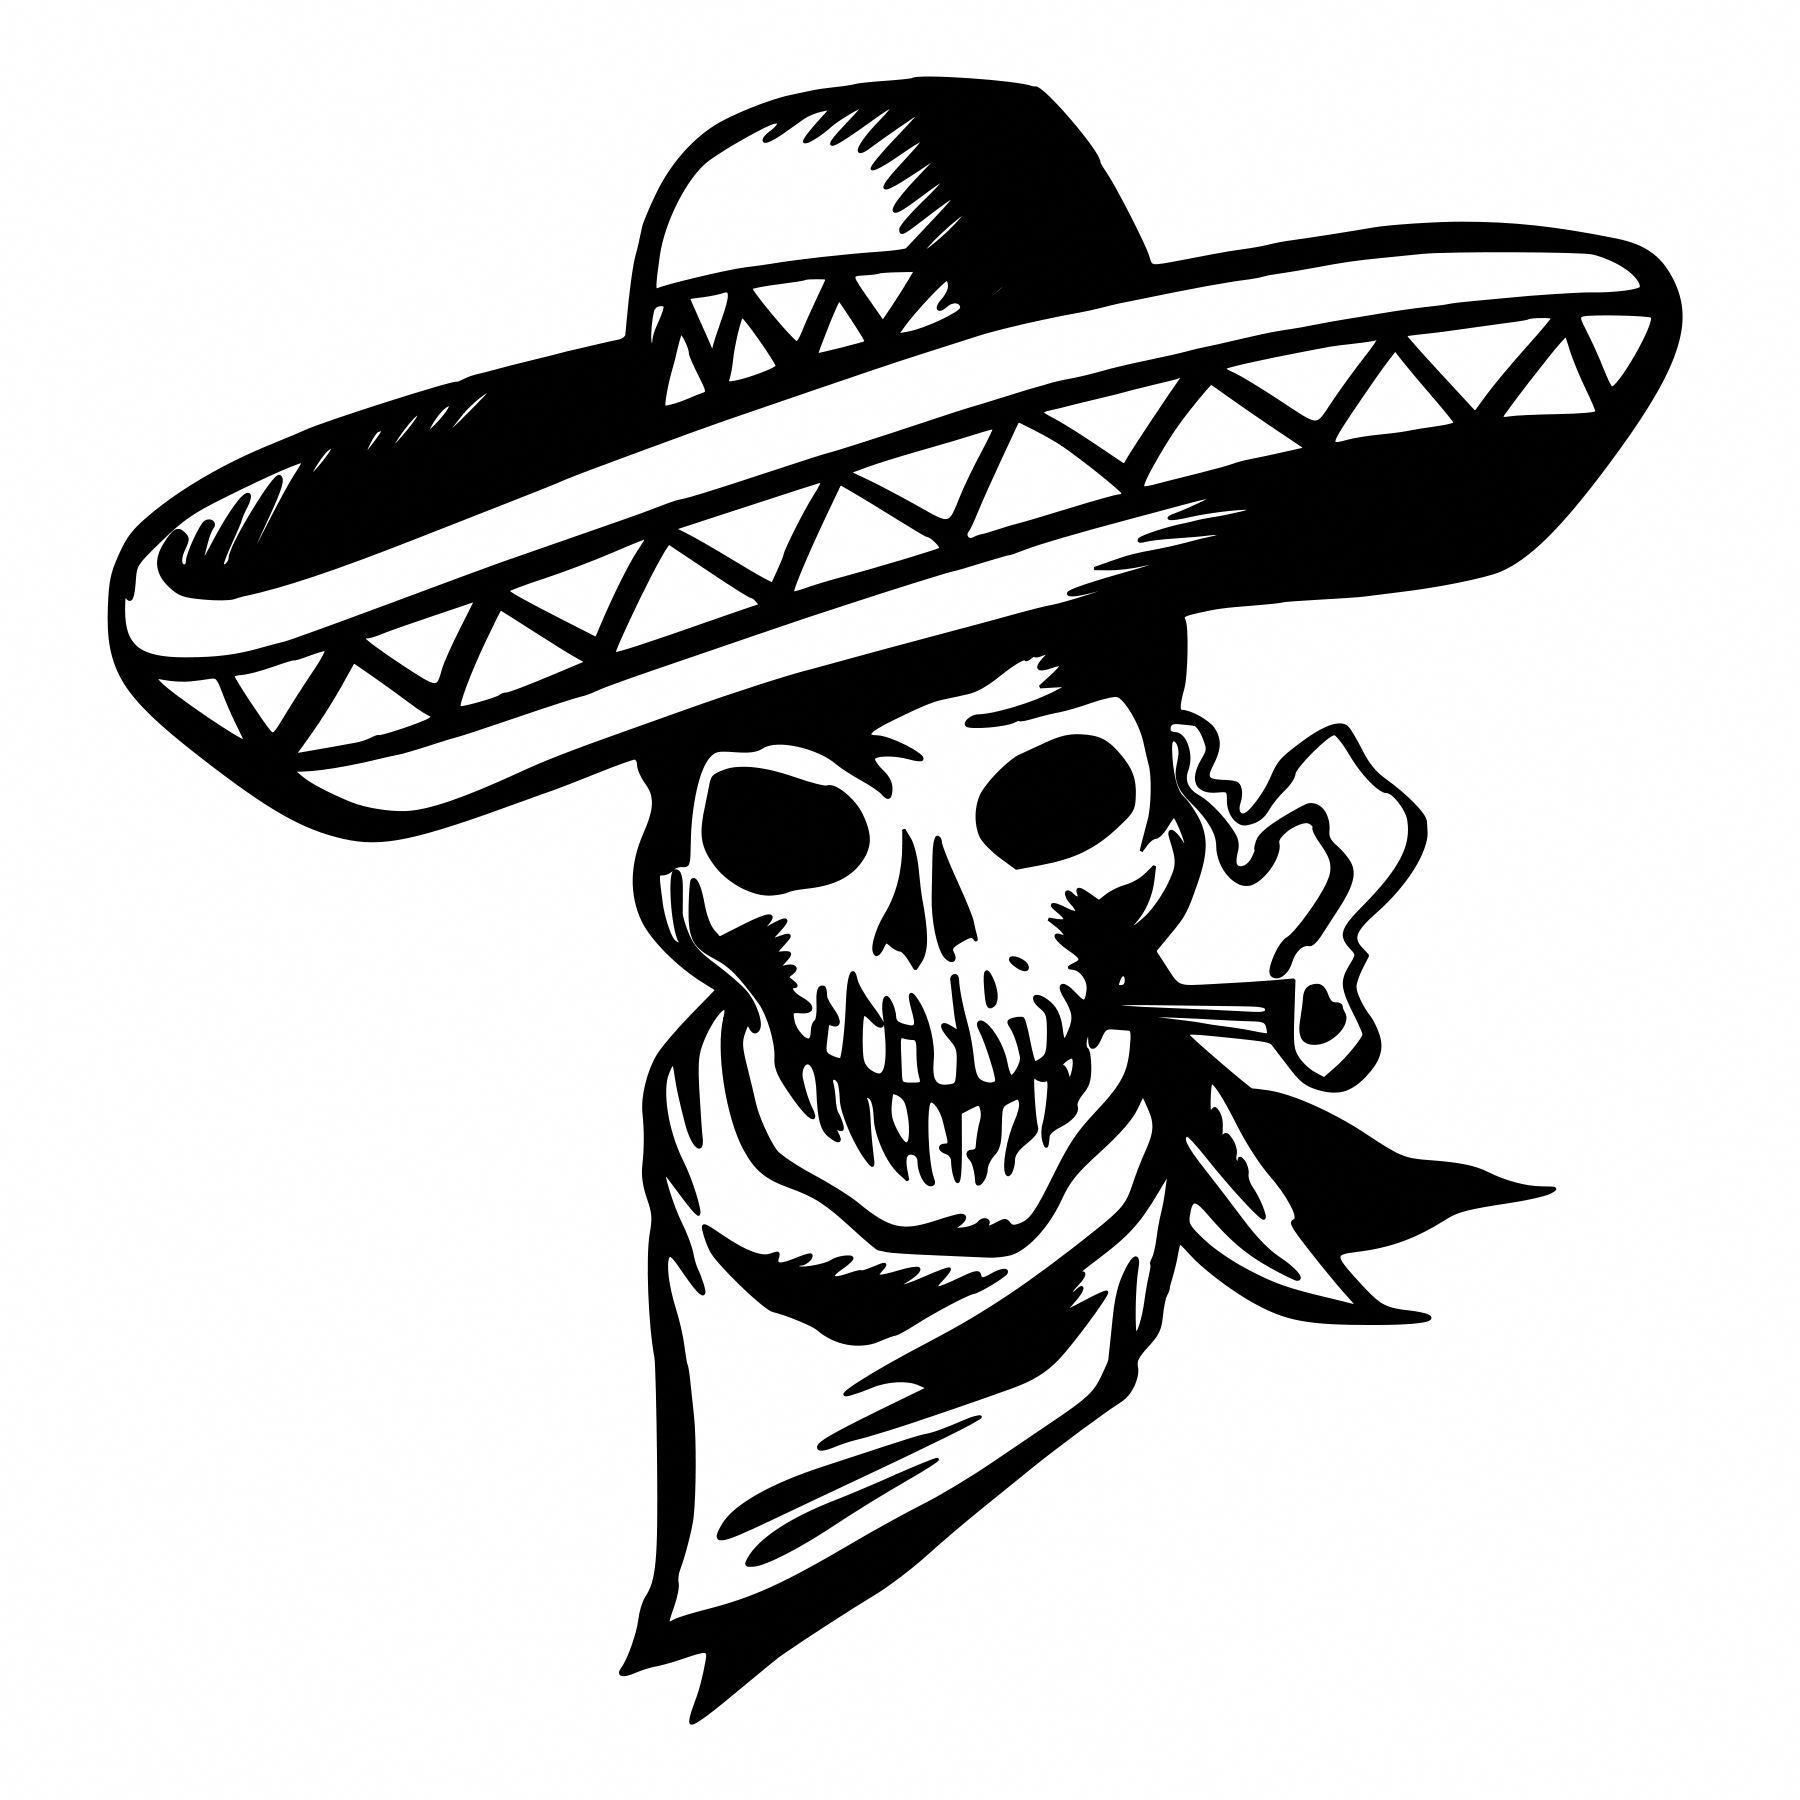 Sombrero skull die cut decal car window wall bumper phone laptop maoritattoos